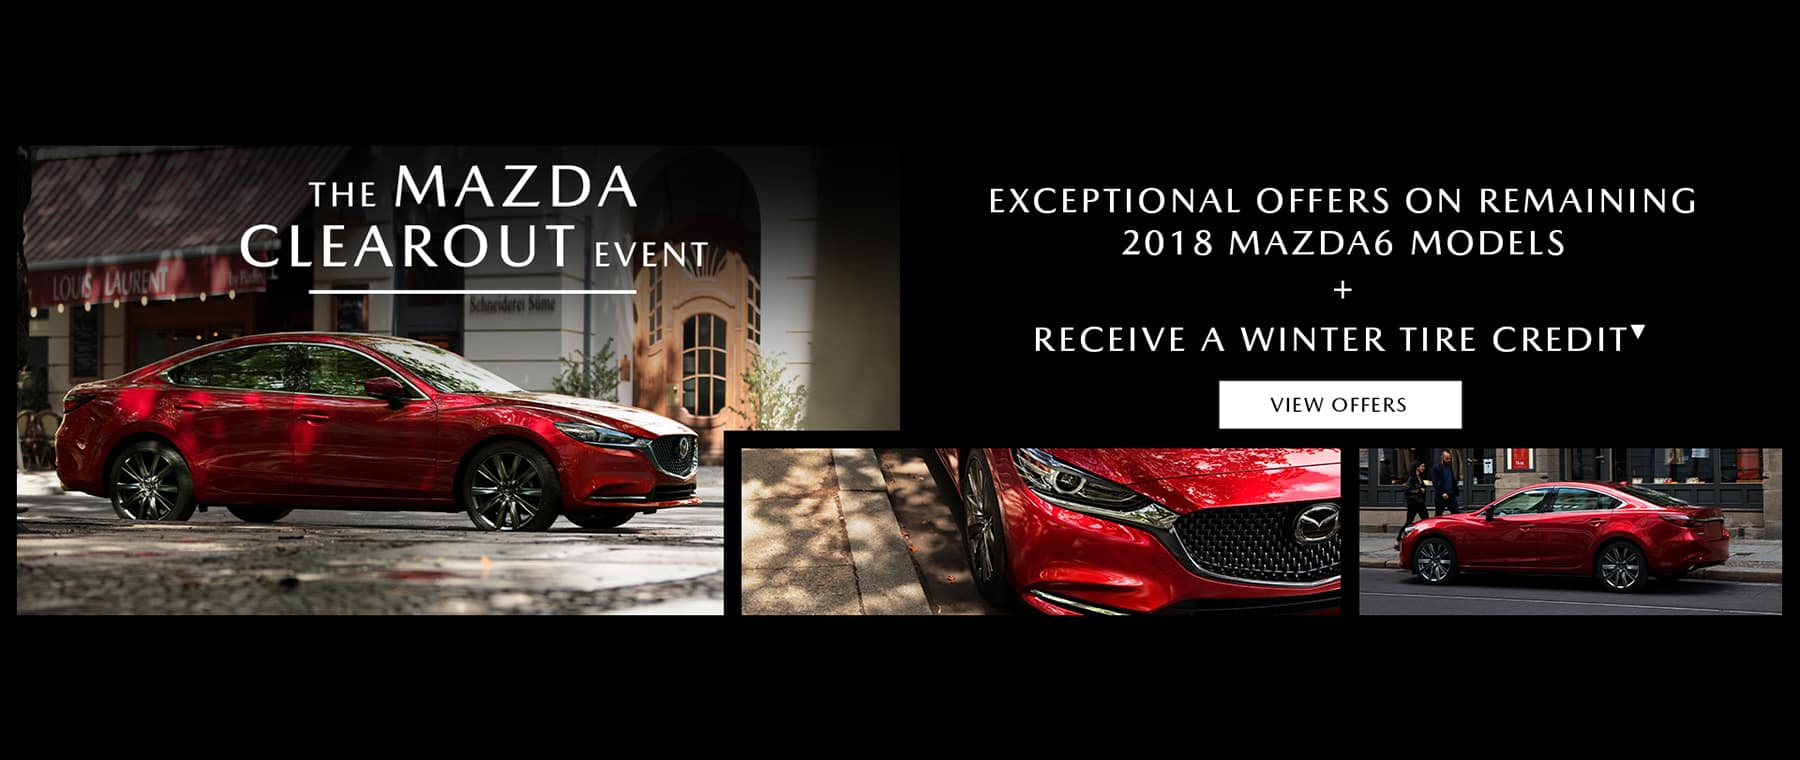 mazda-clearout-banner-red-mazda-in-street